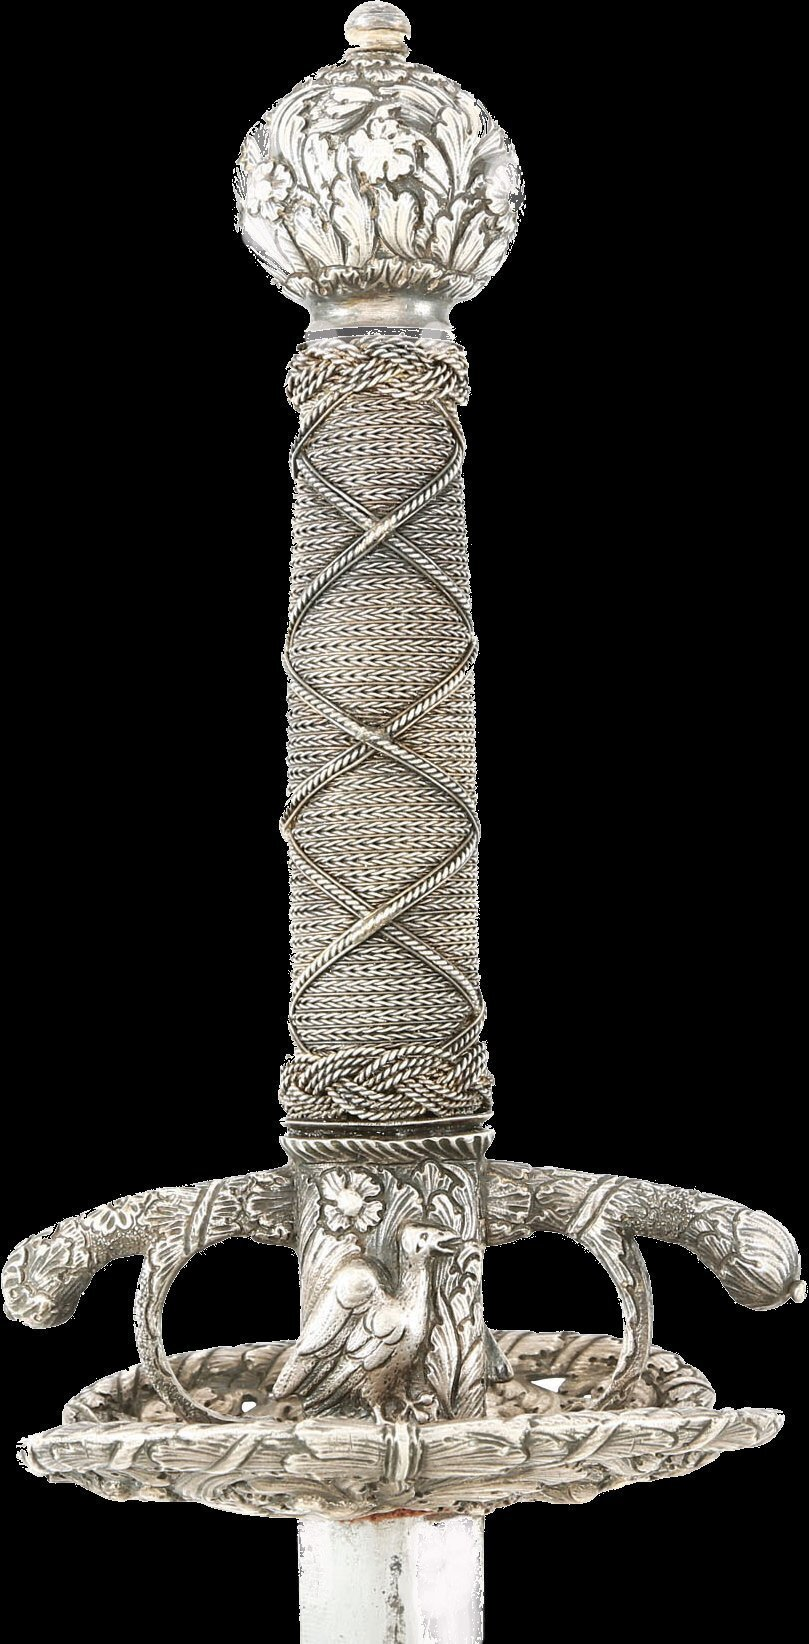 A RARE SILVER HILTED NORTH ITALIAN TRANSITIONAL RAPIER C.1655-60. - Fagan Arms